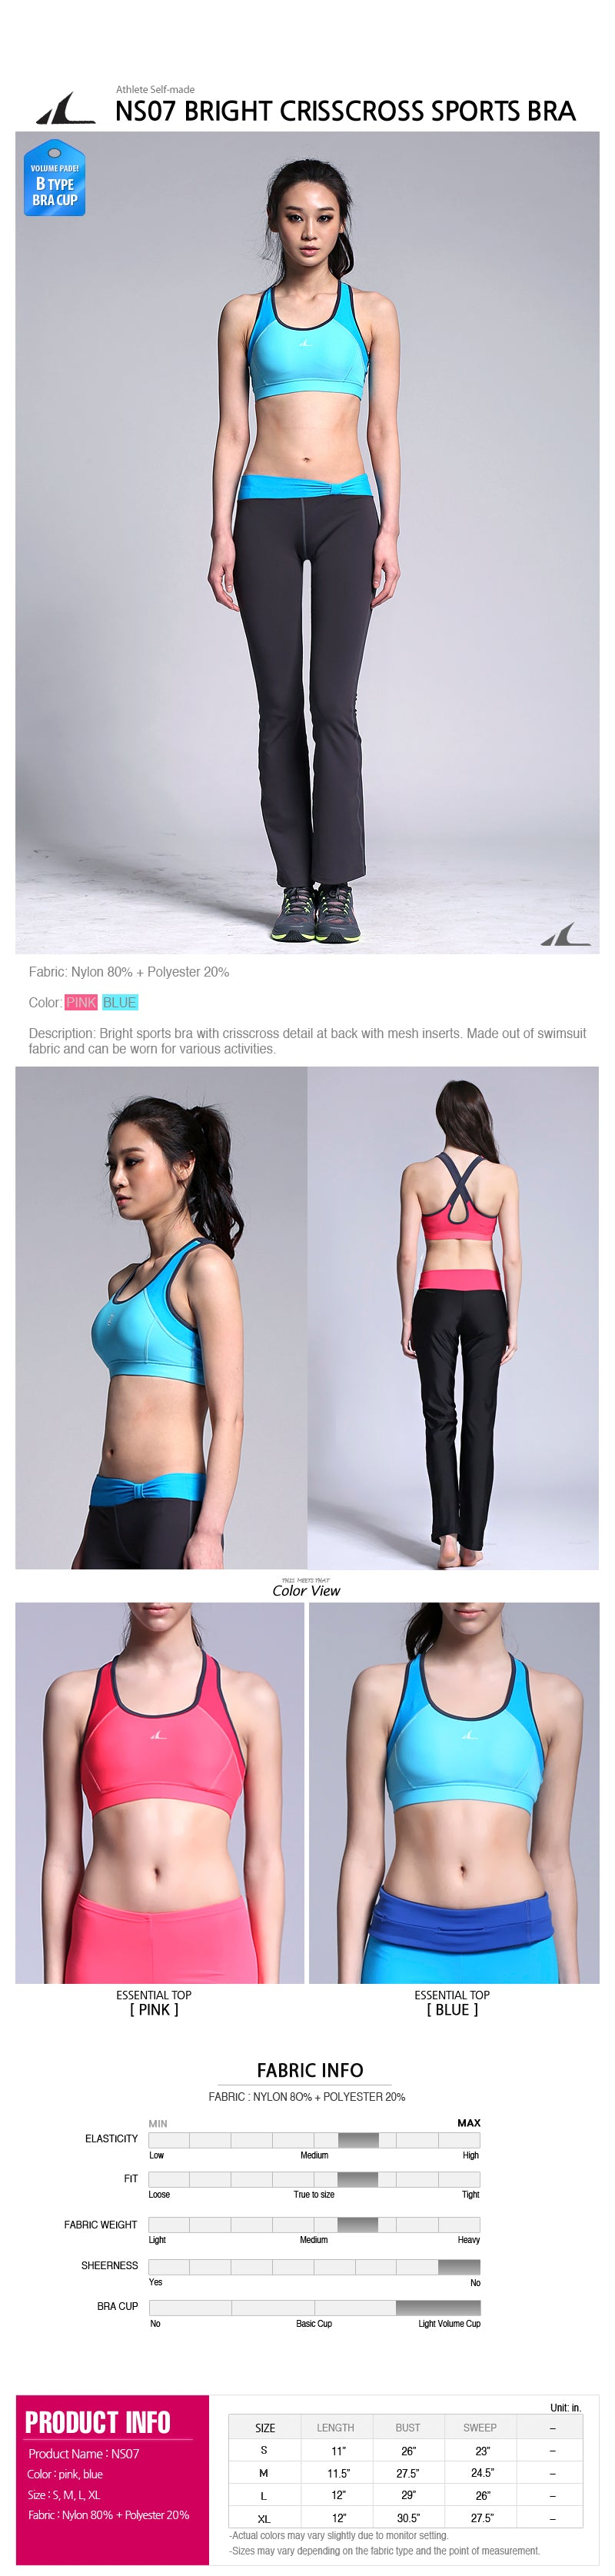 ATHLETE Women's Hairin Sports Bra w/ removable pads, Style NS07